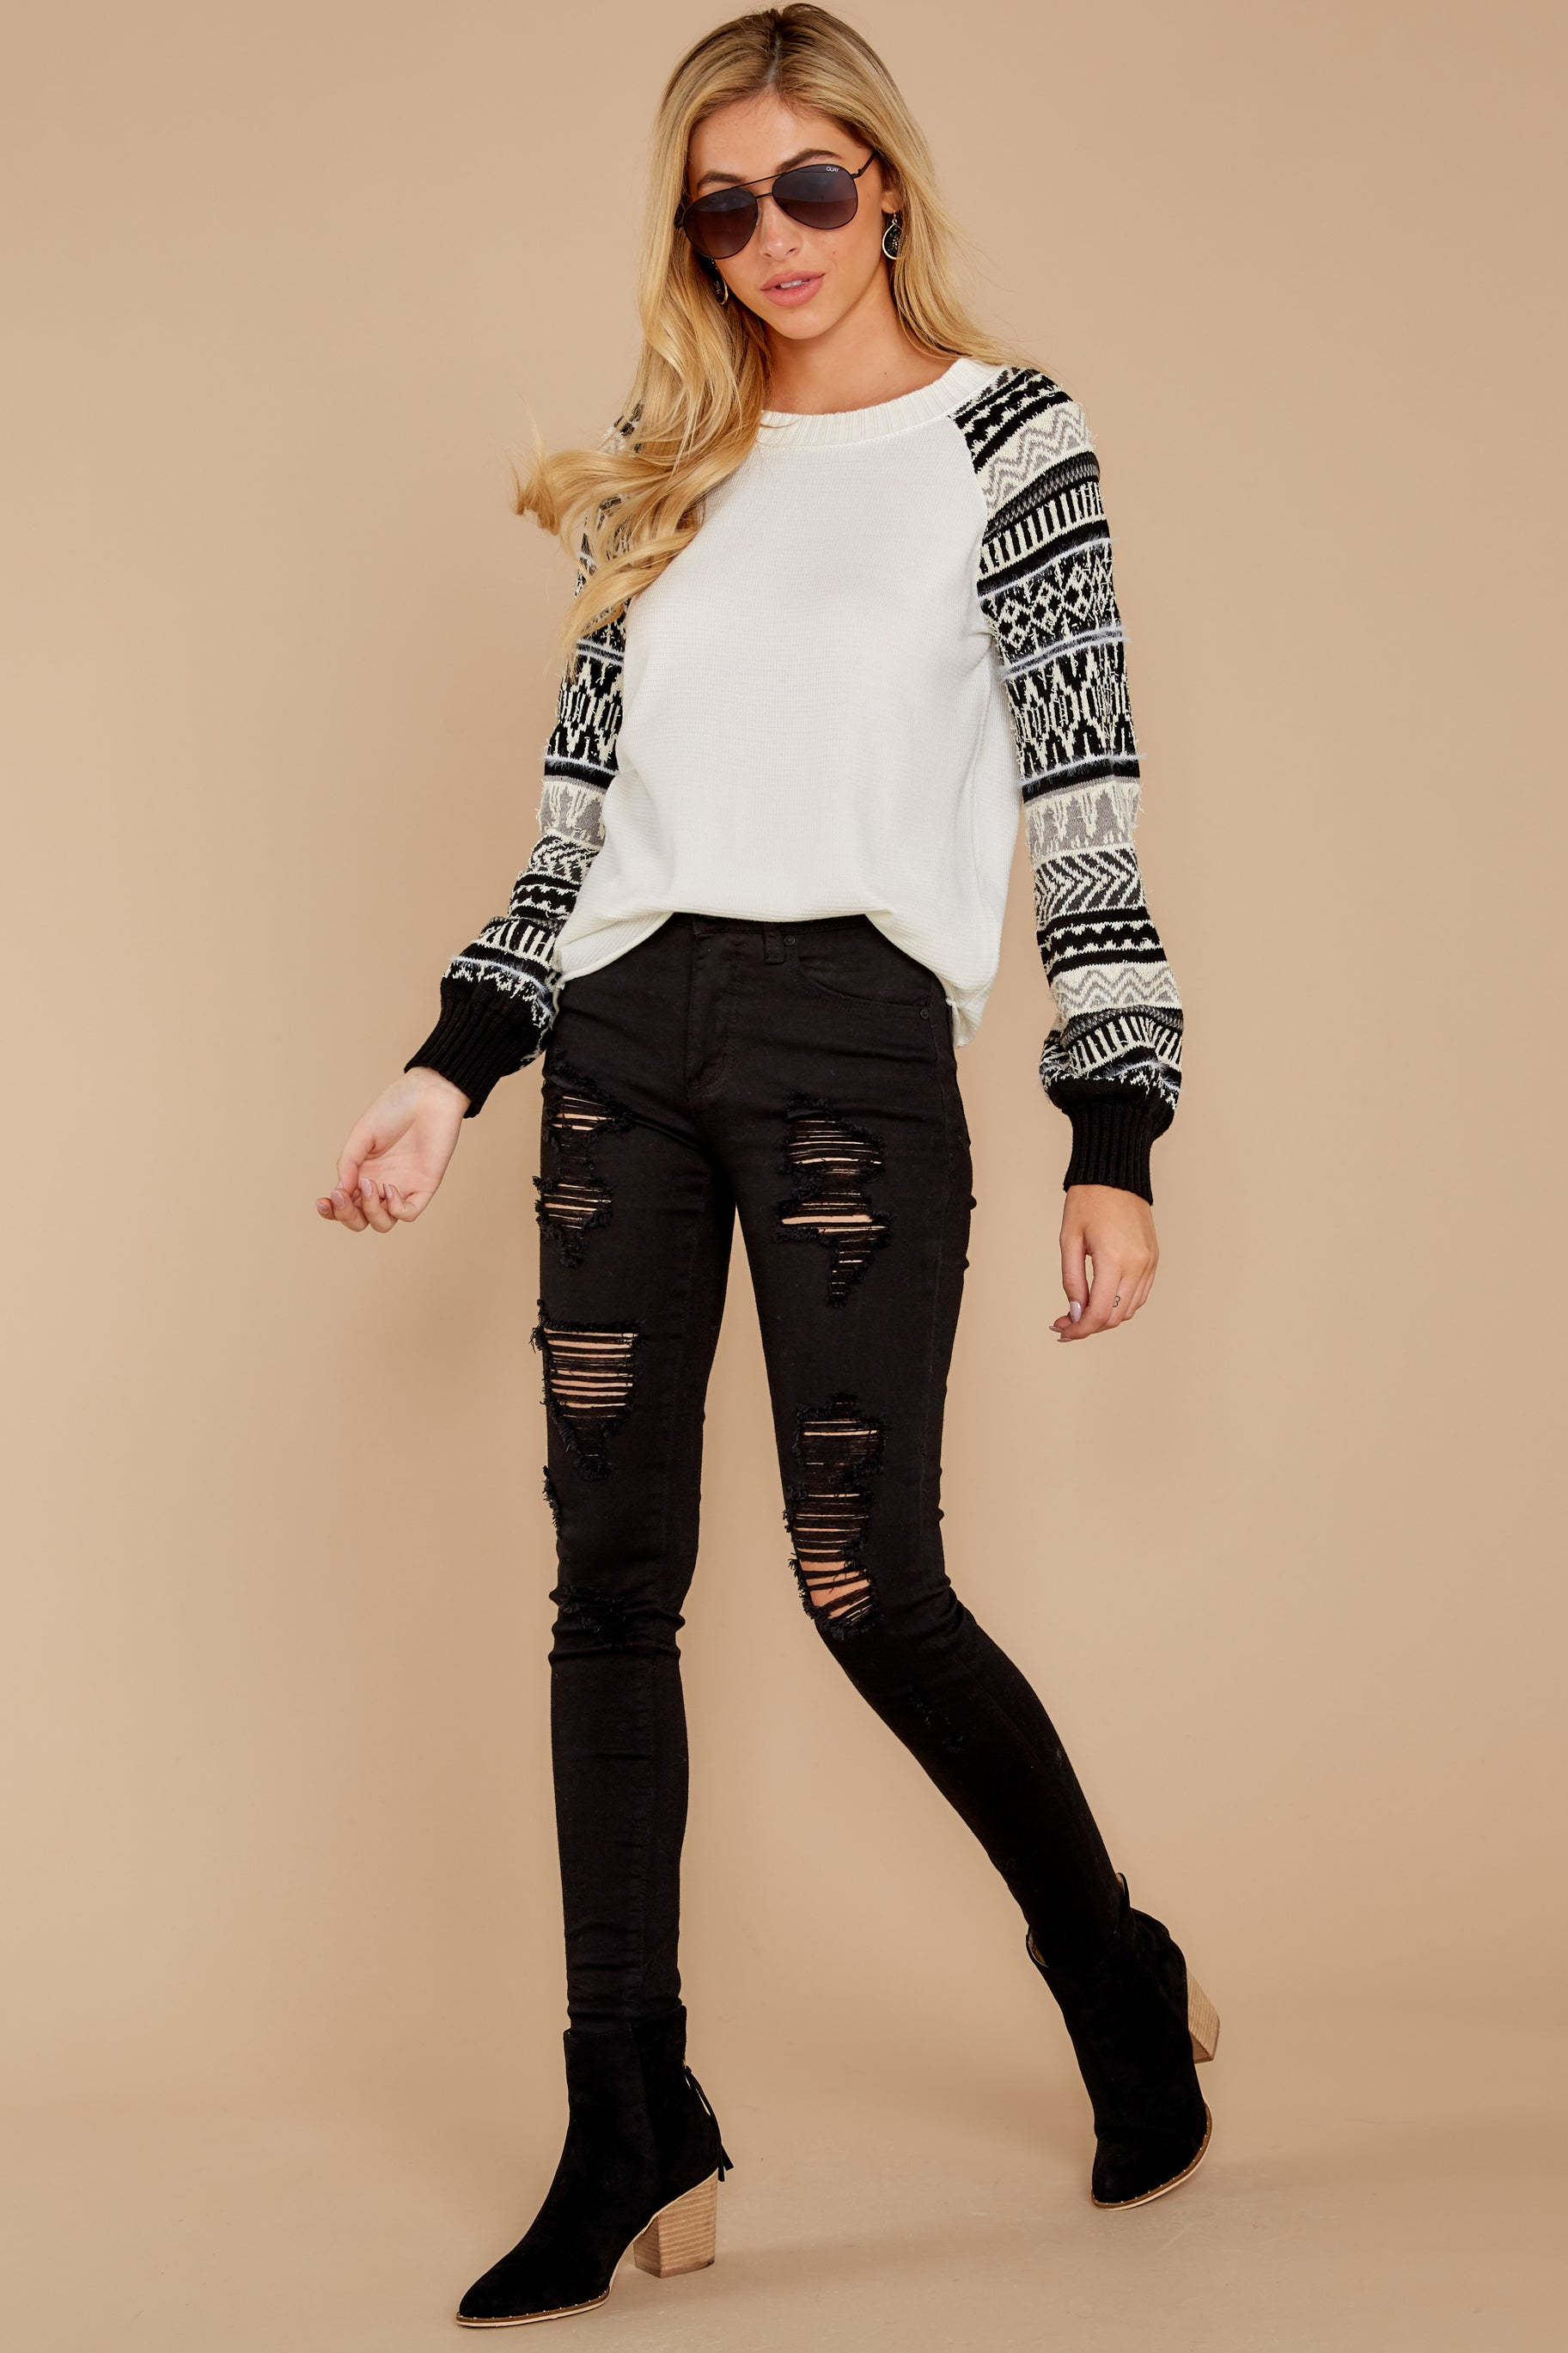 2 Never Settle Black And White Sweater at reddress.com